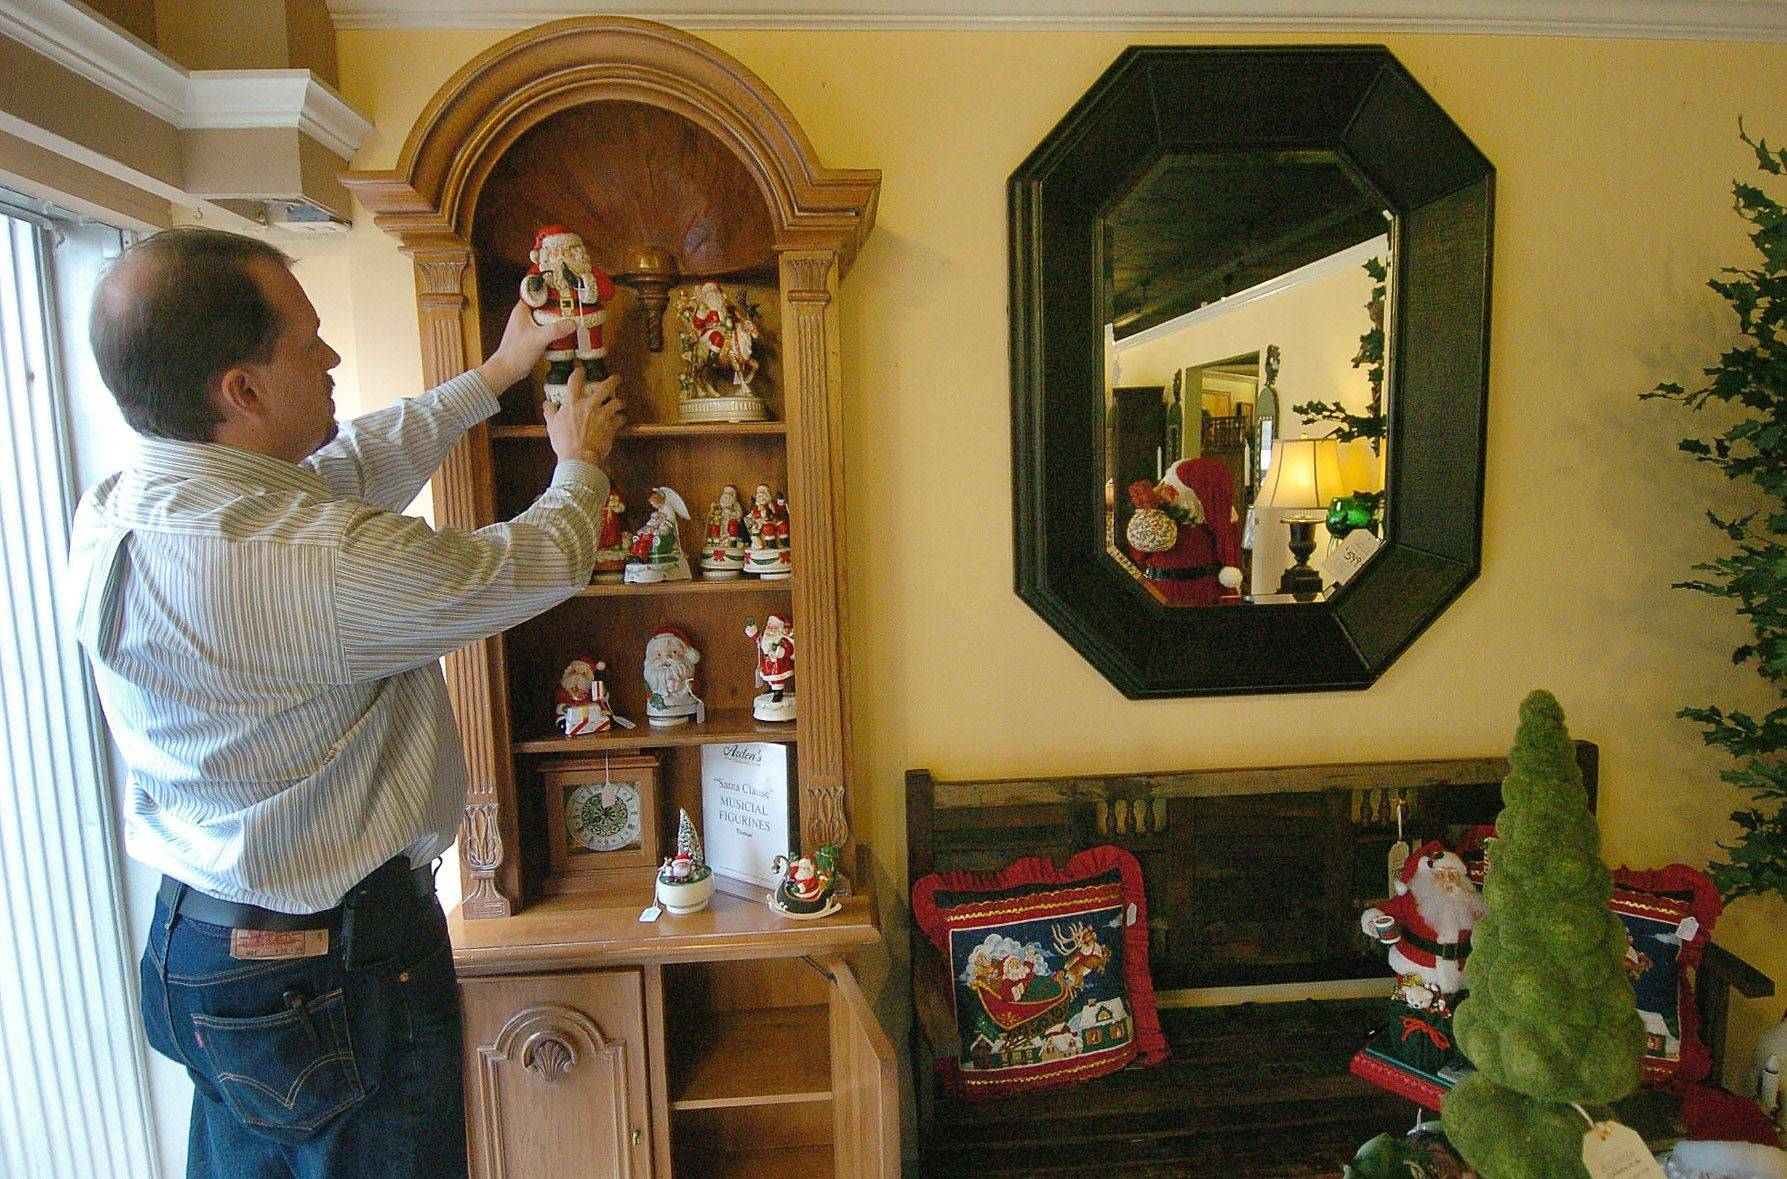 Co-owner Mike Main sets up Christmas decorations in the window display at Arden's furniture in downtown Libertyville.